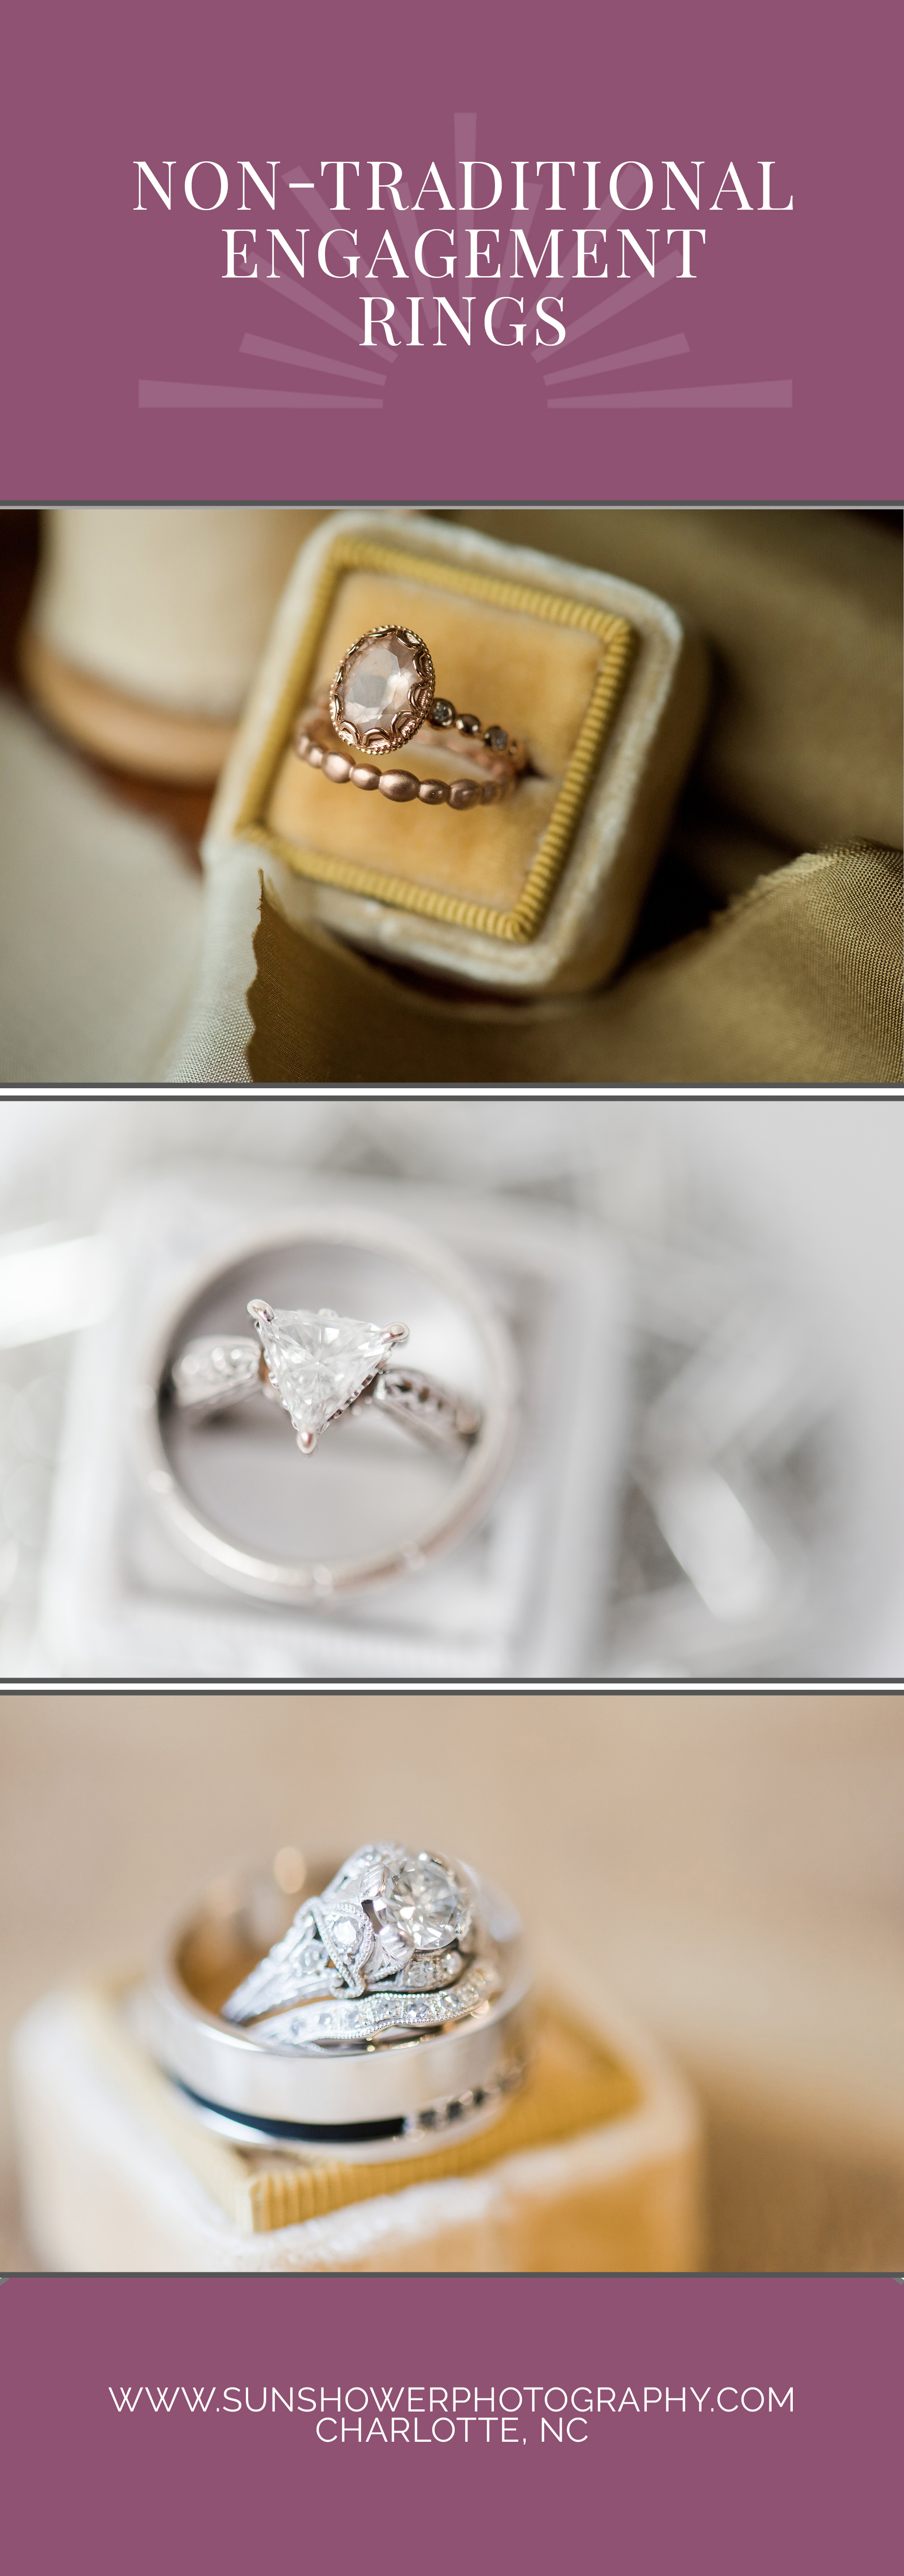 non-traditional engagement ring on pinterest